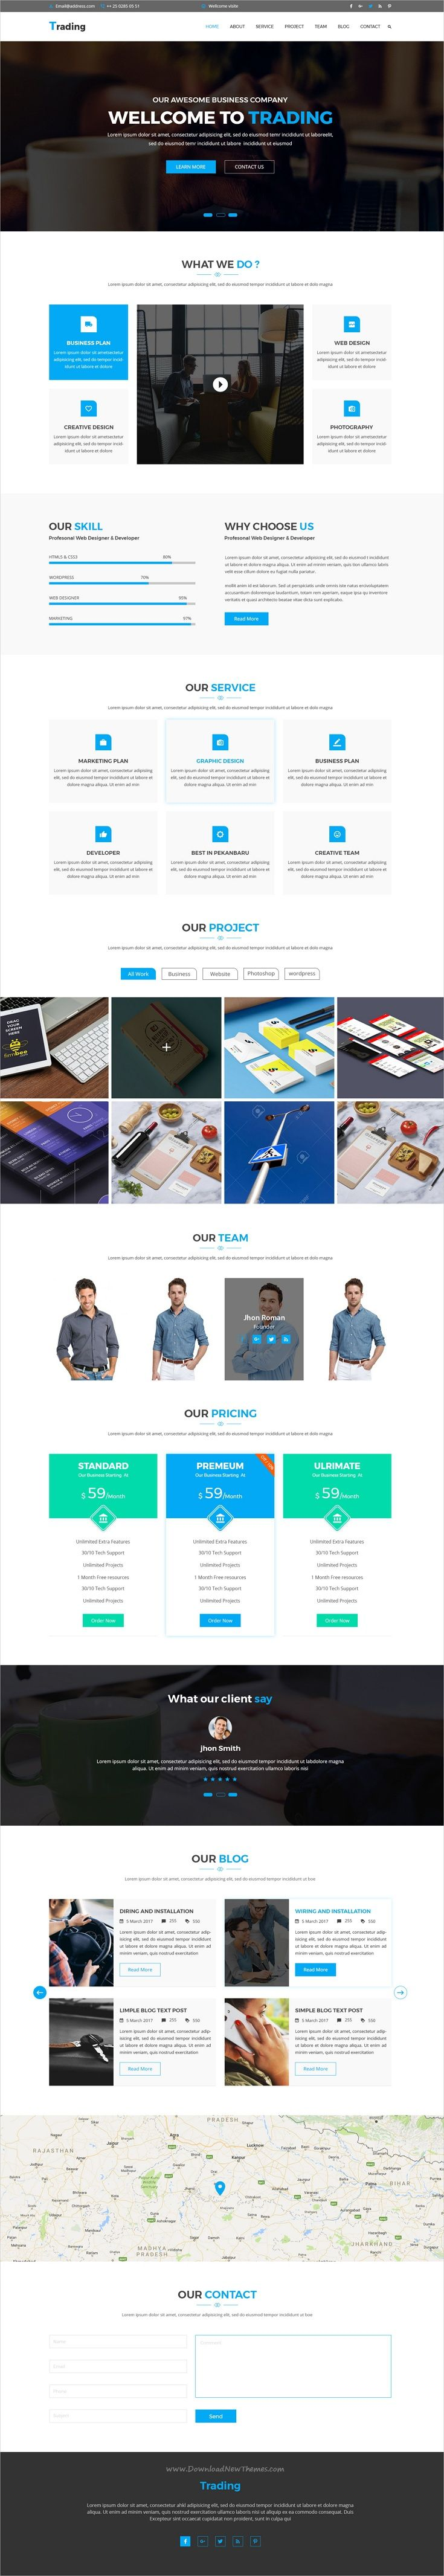 Trading is the best choice premium #PSD template for creative #agency or business #landing page website download now➩ https://themeforest.net/item/trading-corporate-psd-template/19579679?ref=Datasata  - No site #ThemeForest encontra os melhores #Templates & #Plugins para #Wordpress. Confira em http://www.estrategiadigital.pt/themeforest-templates-wordpress/